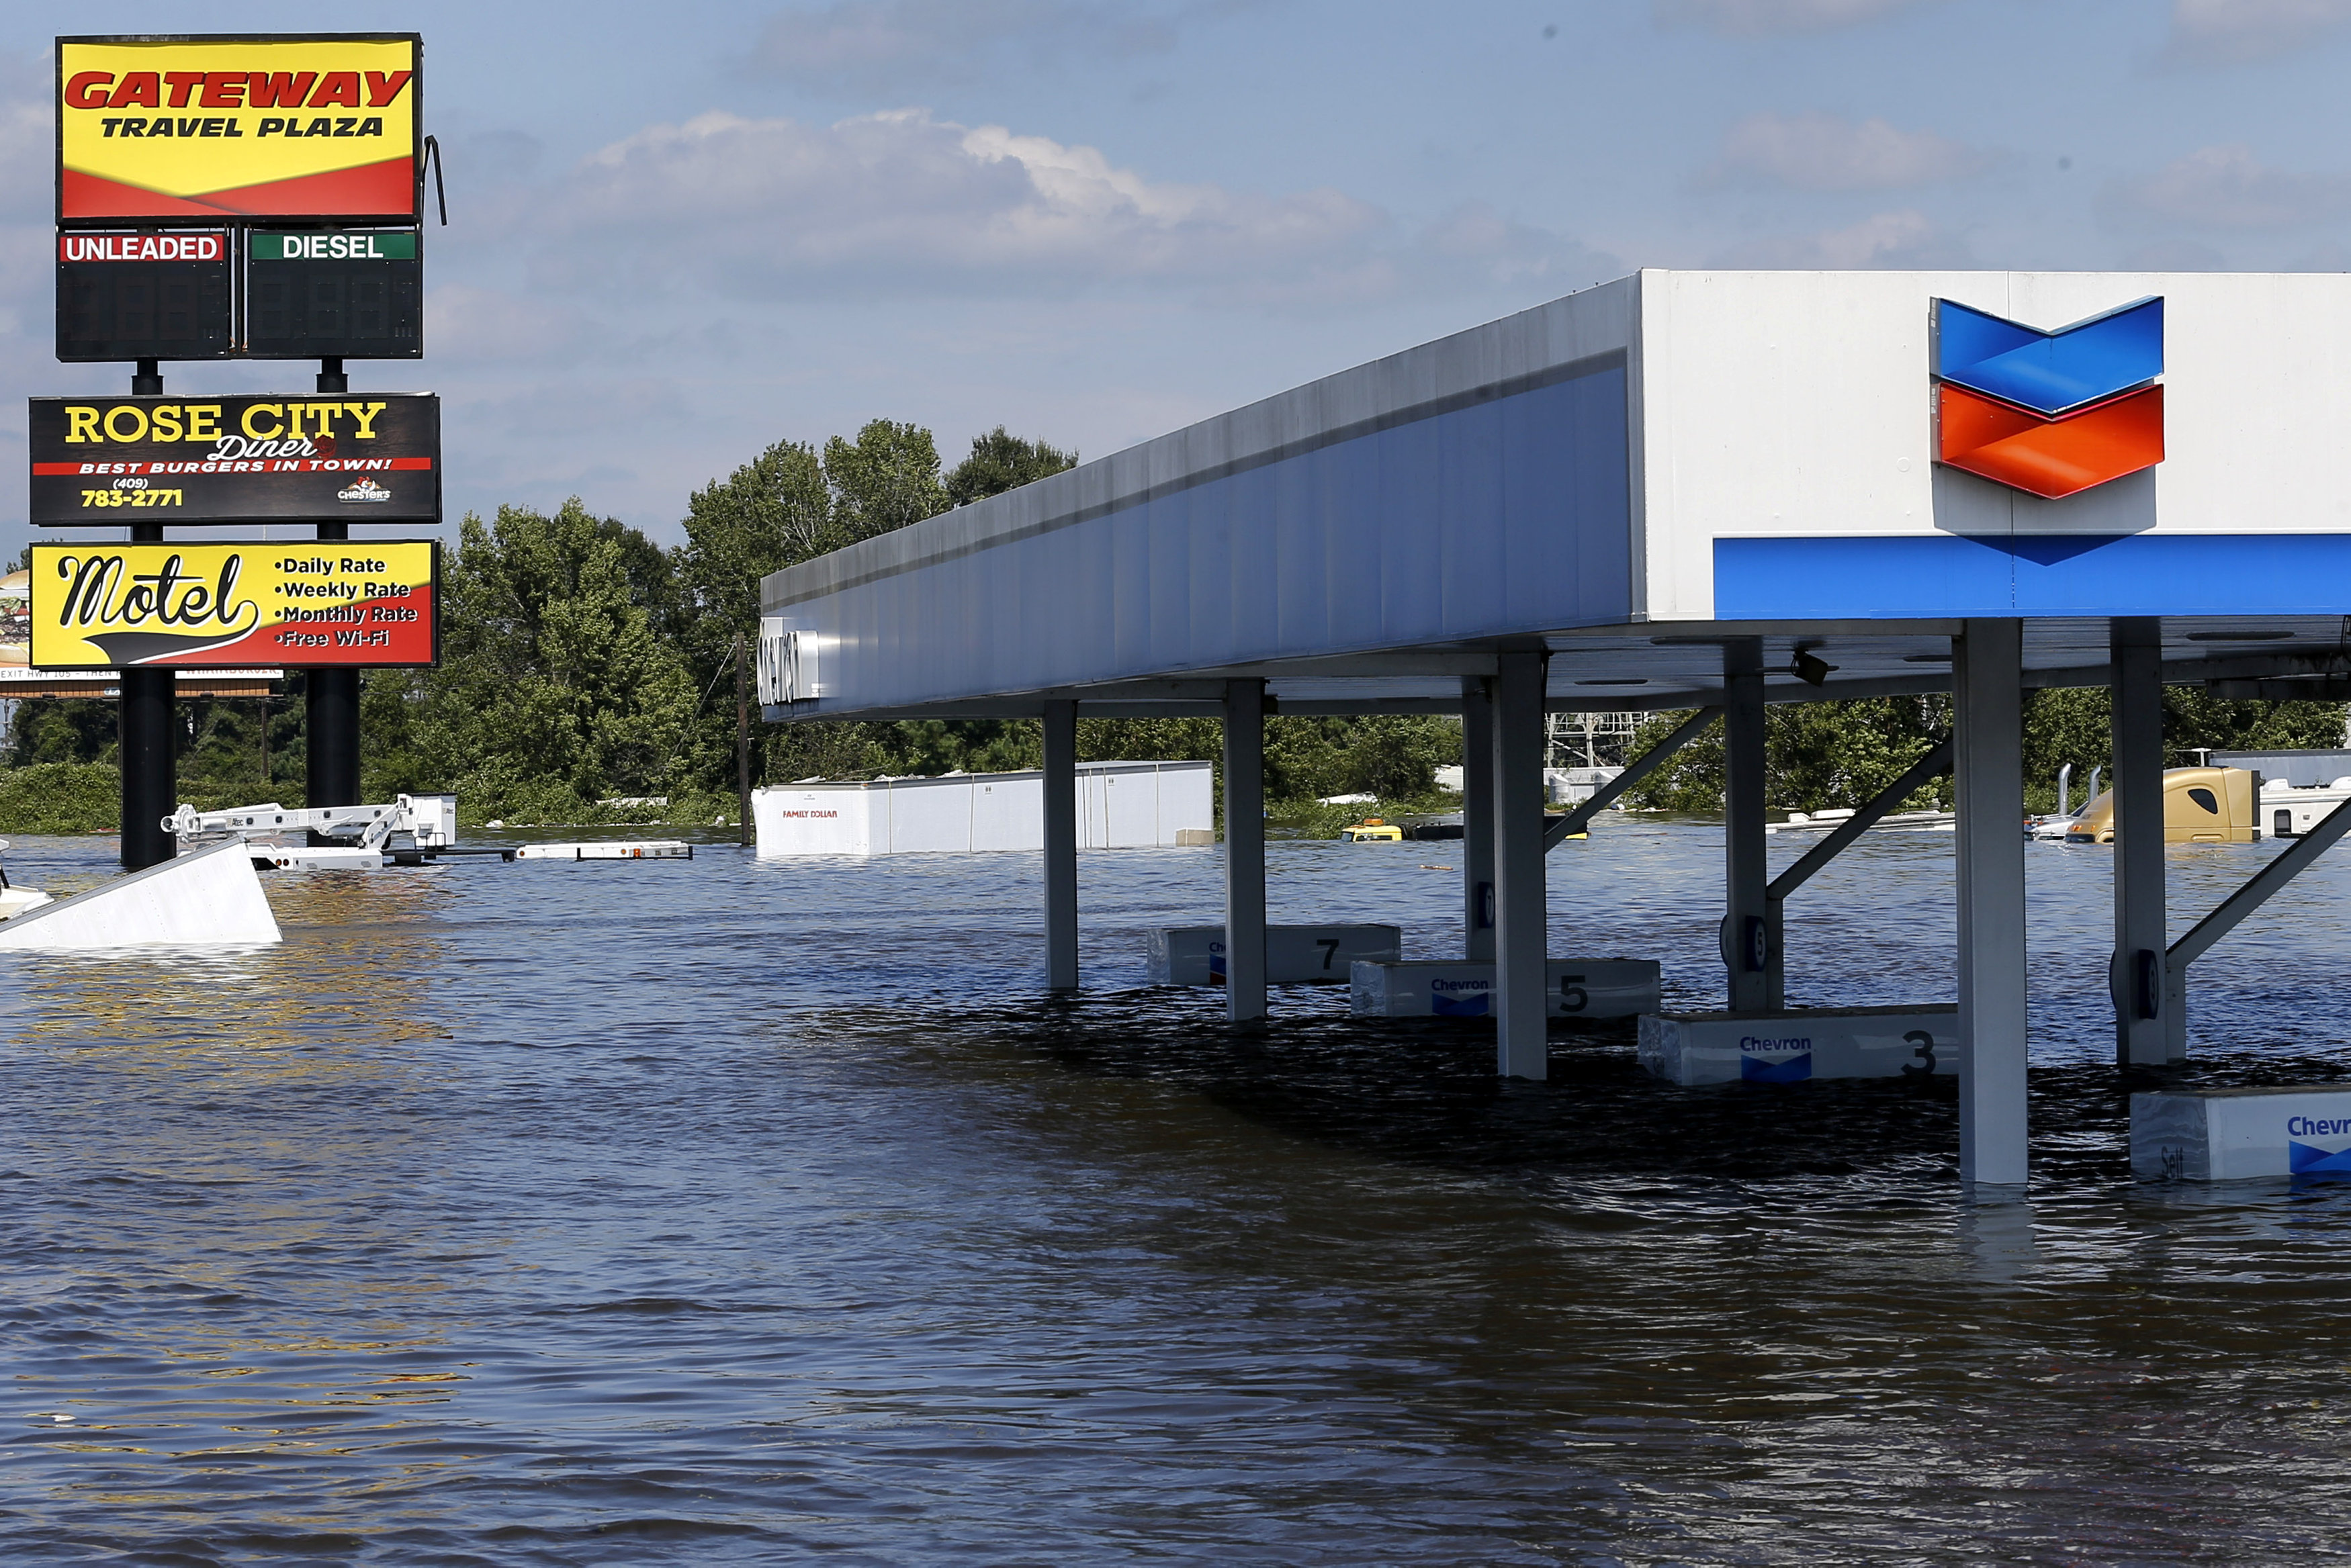 A gas station submerged under flood waters from Tropical Storm Harvey is seen in Rose City, Texas, U.S., on August 31, 2017. REUTERS/Jonathan Bachman